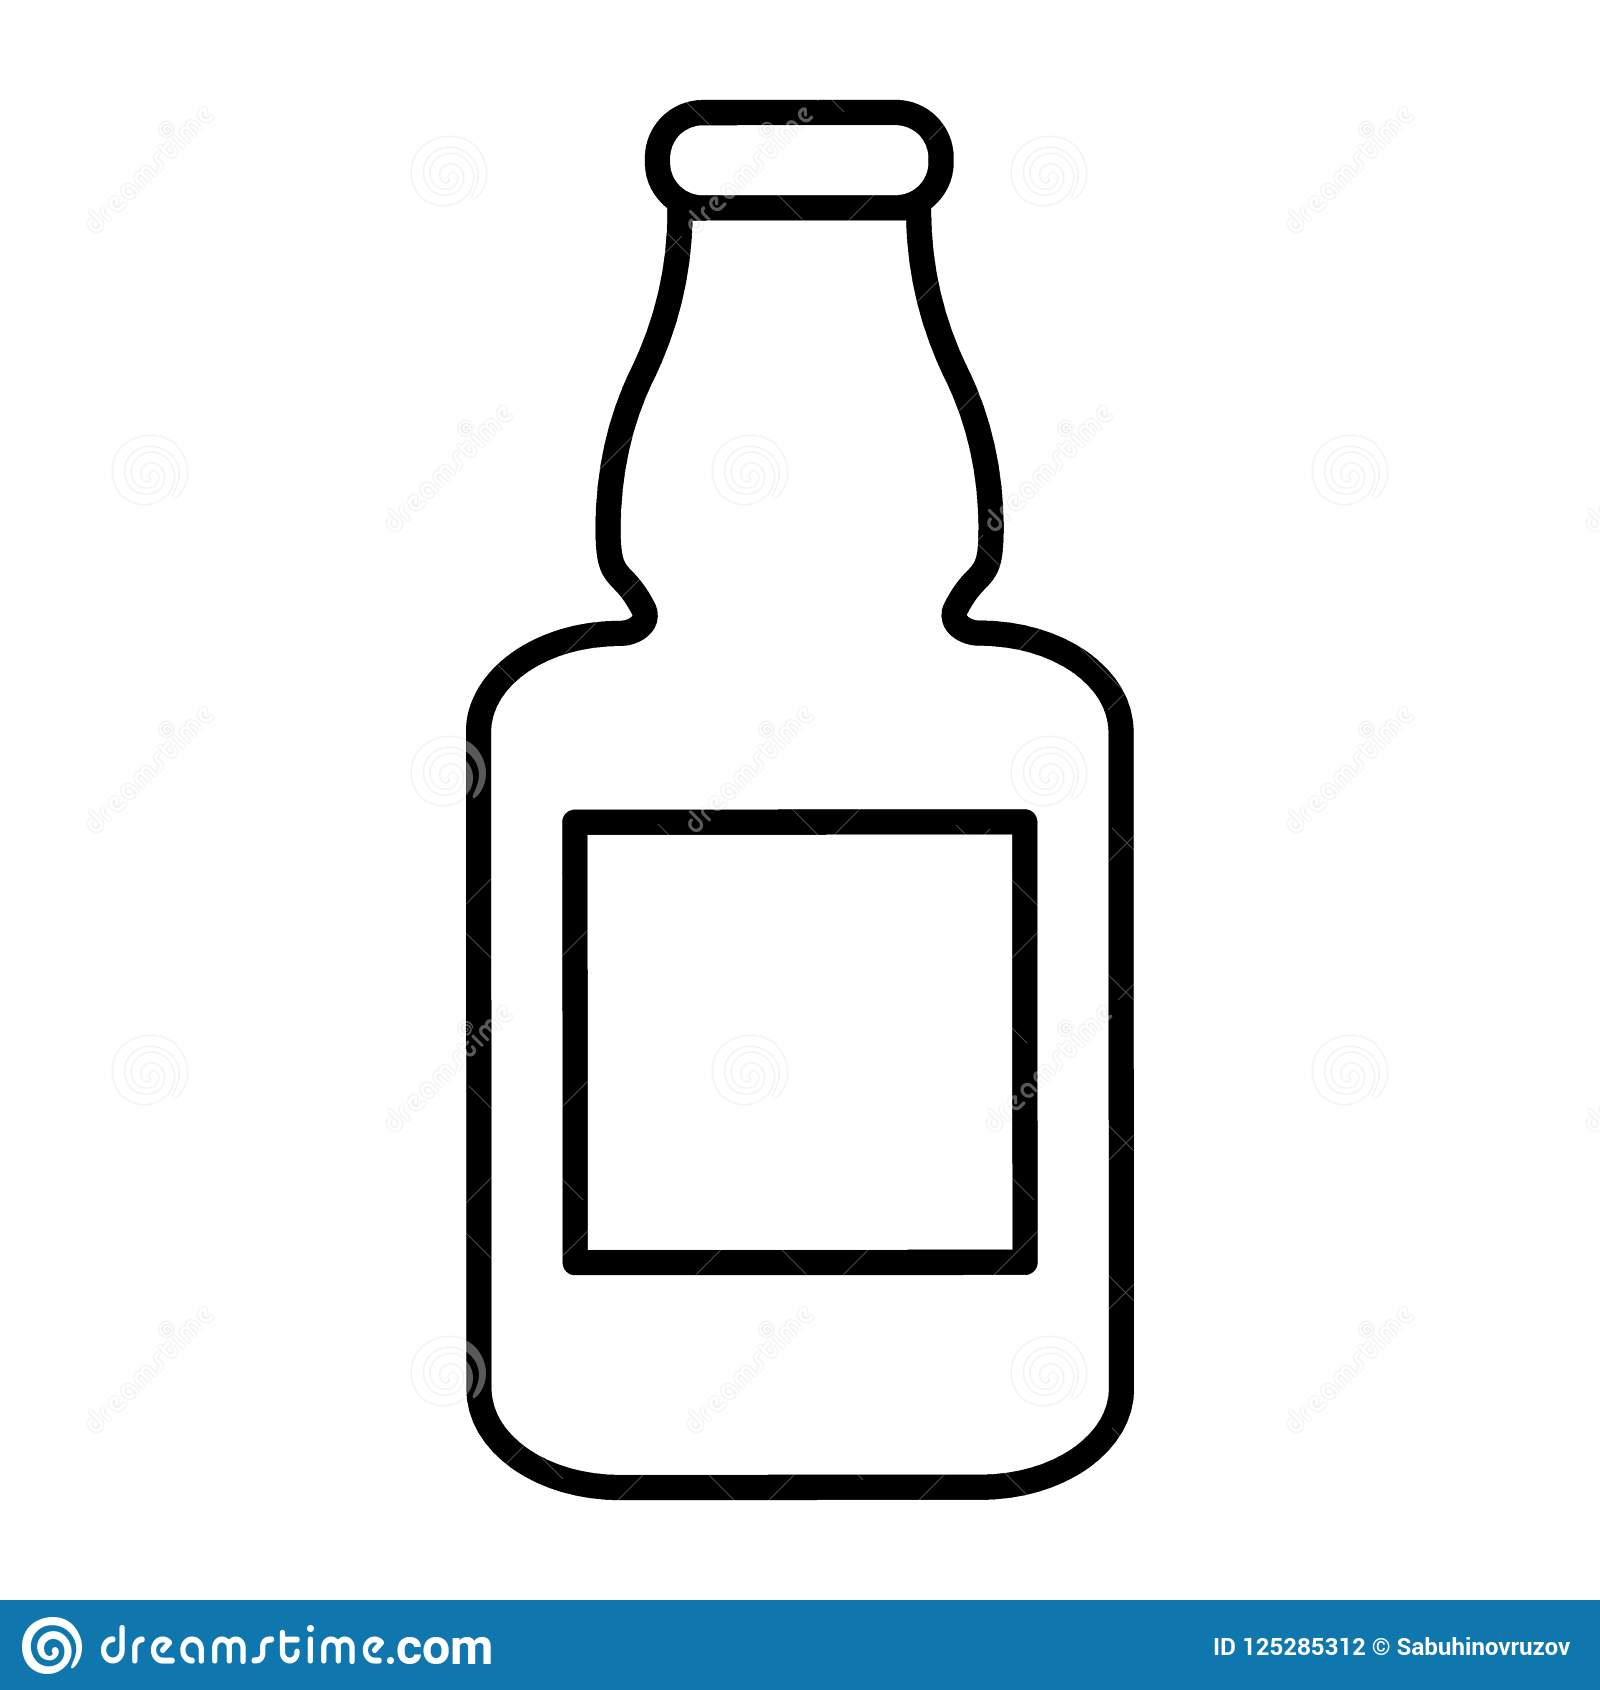 Beer Bottle Thin Line Icon. Flask Of Beer Vector Illustration.